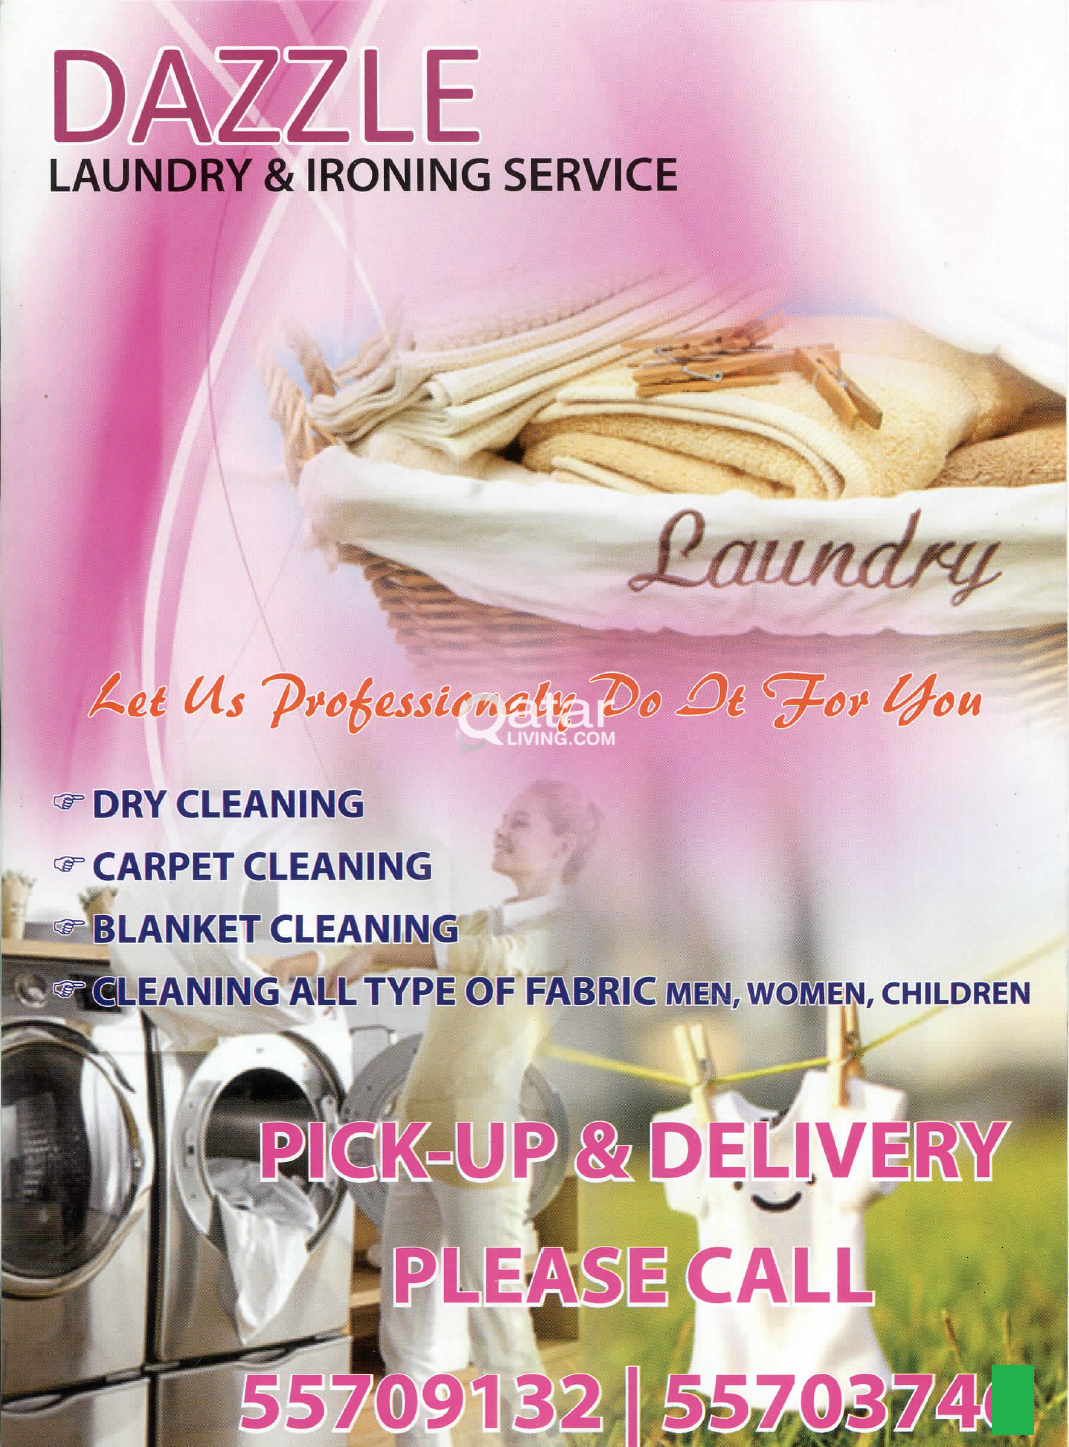 Laundry @ cheapest rate